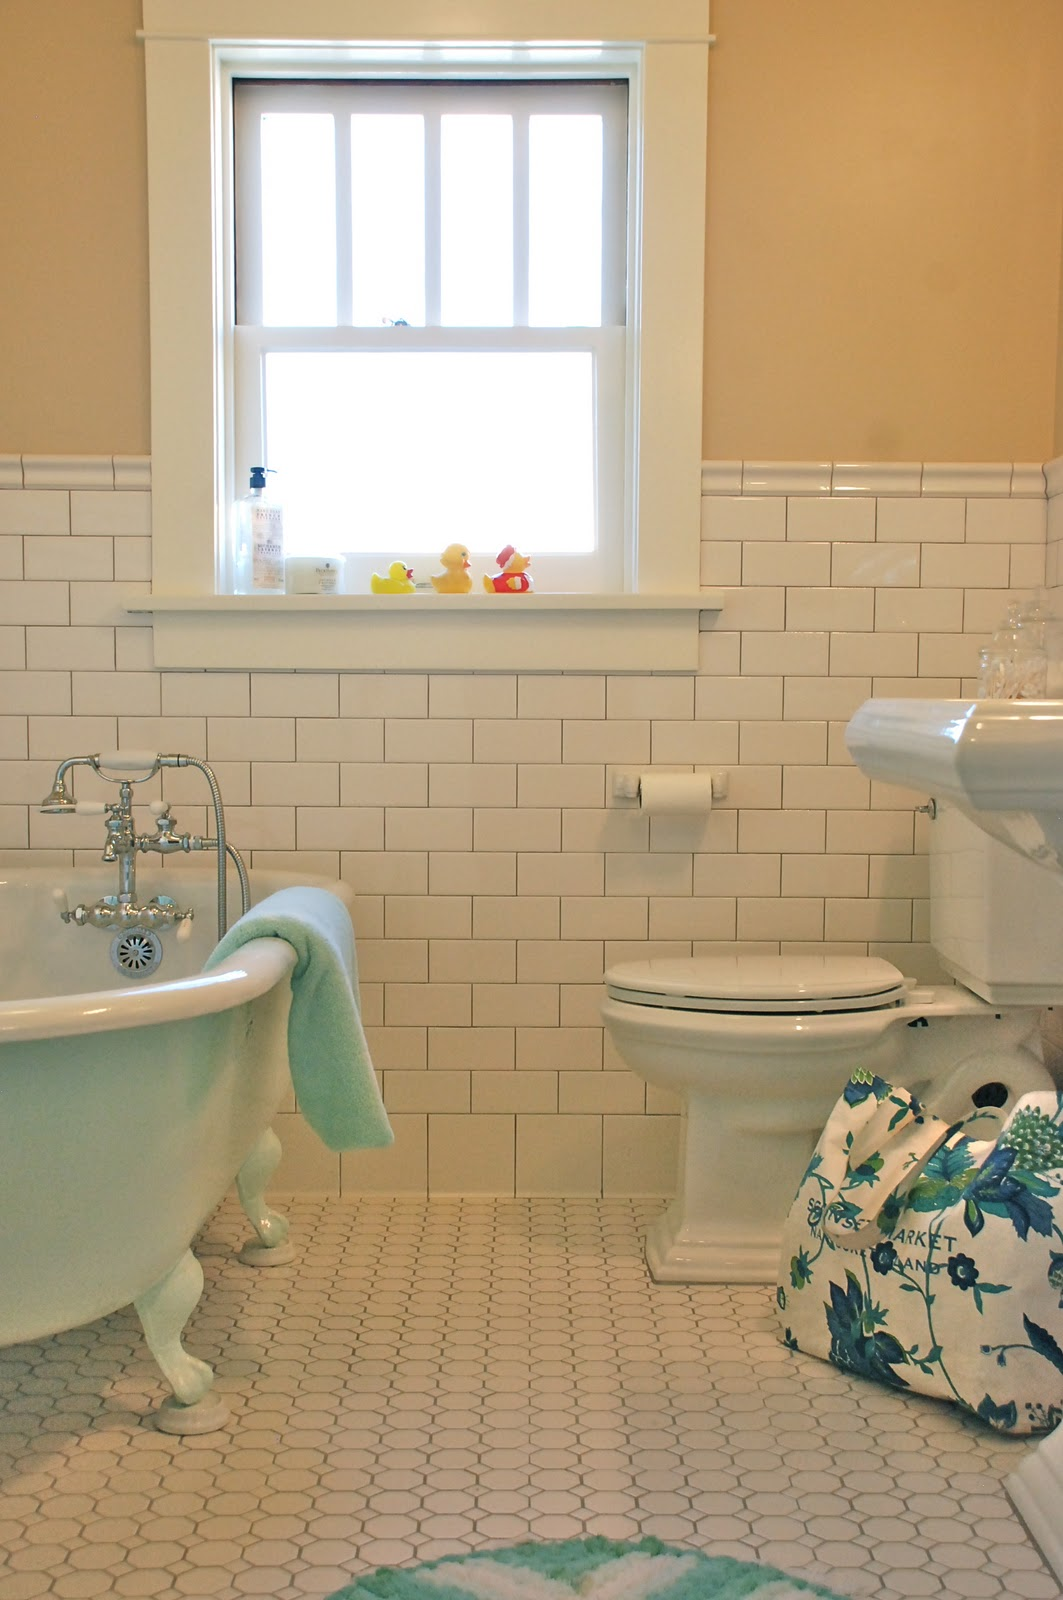 Image Result For Plumbing Fixtures Company